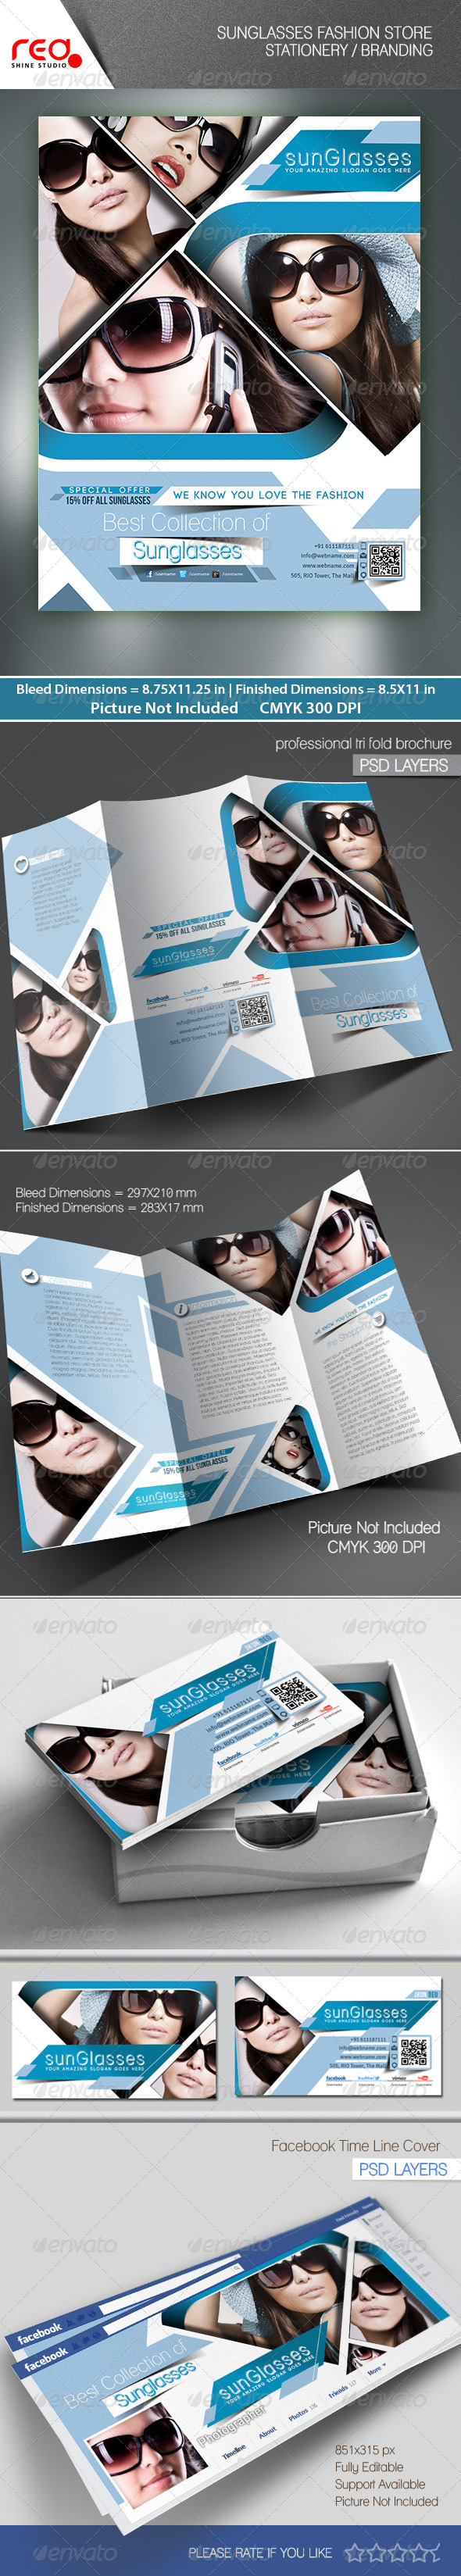 GraphicRiver SunGlasses Fashion Store Branding Bundle 7637380